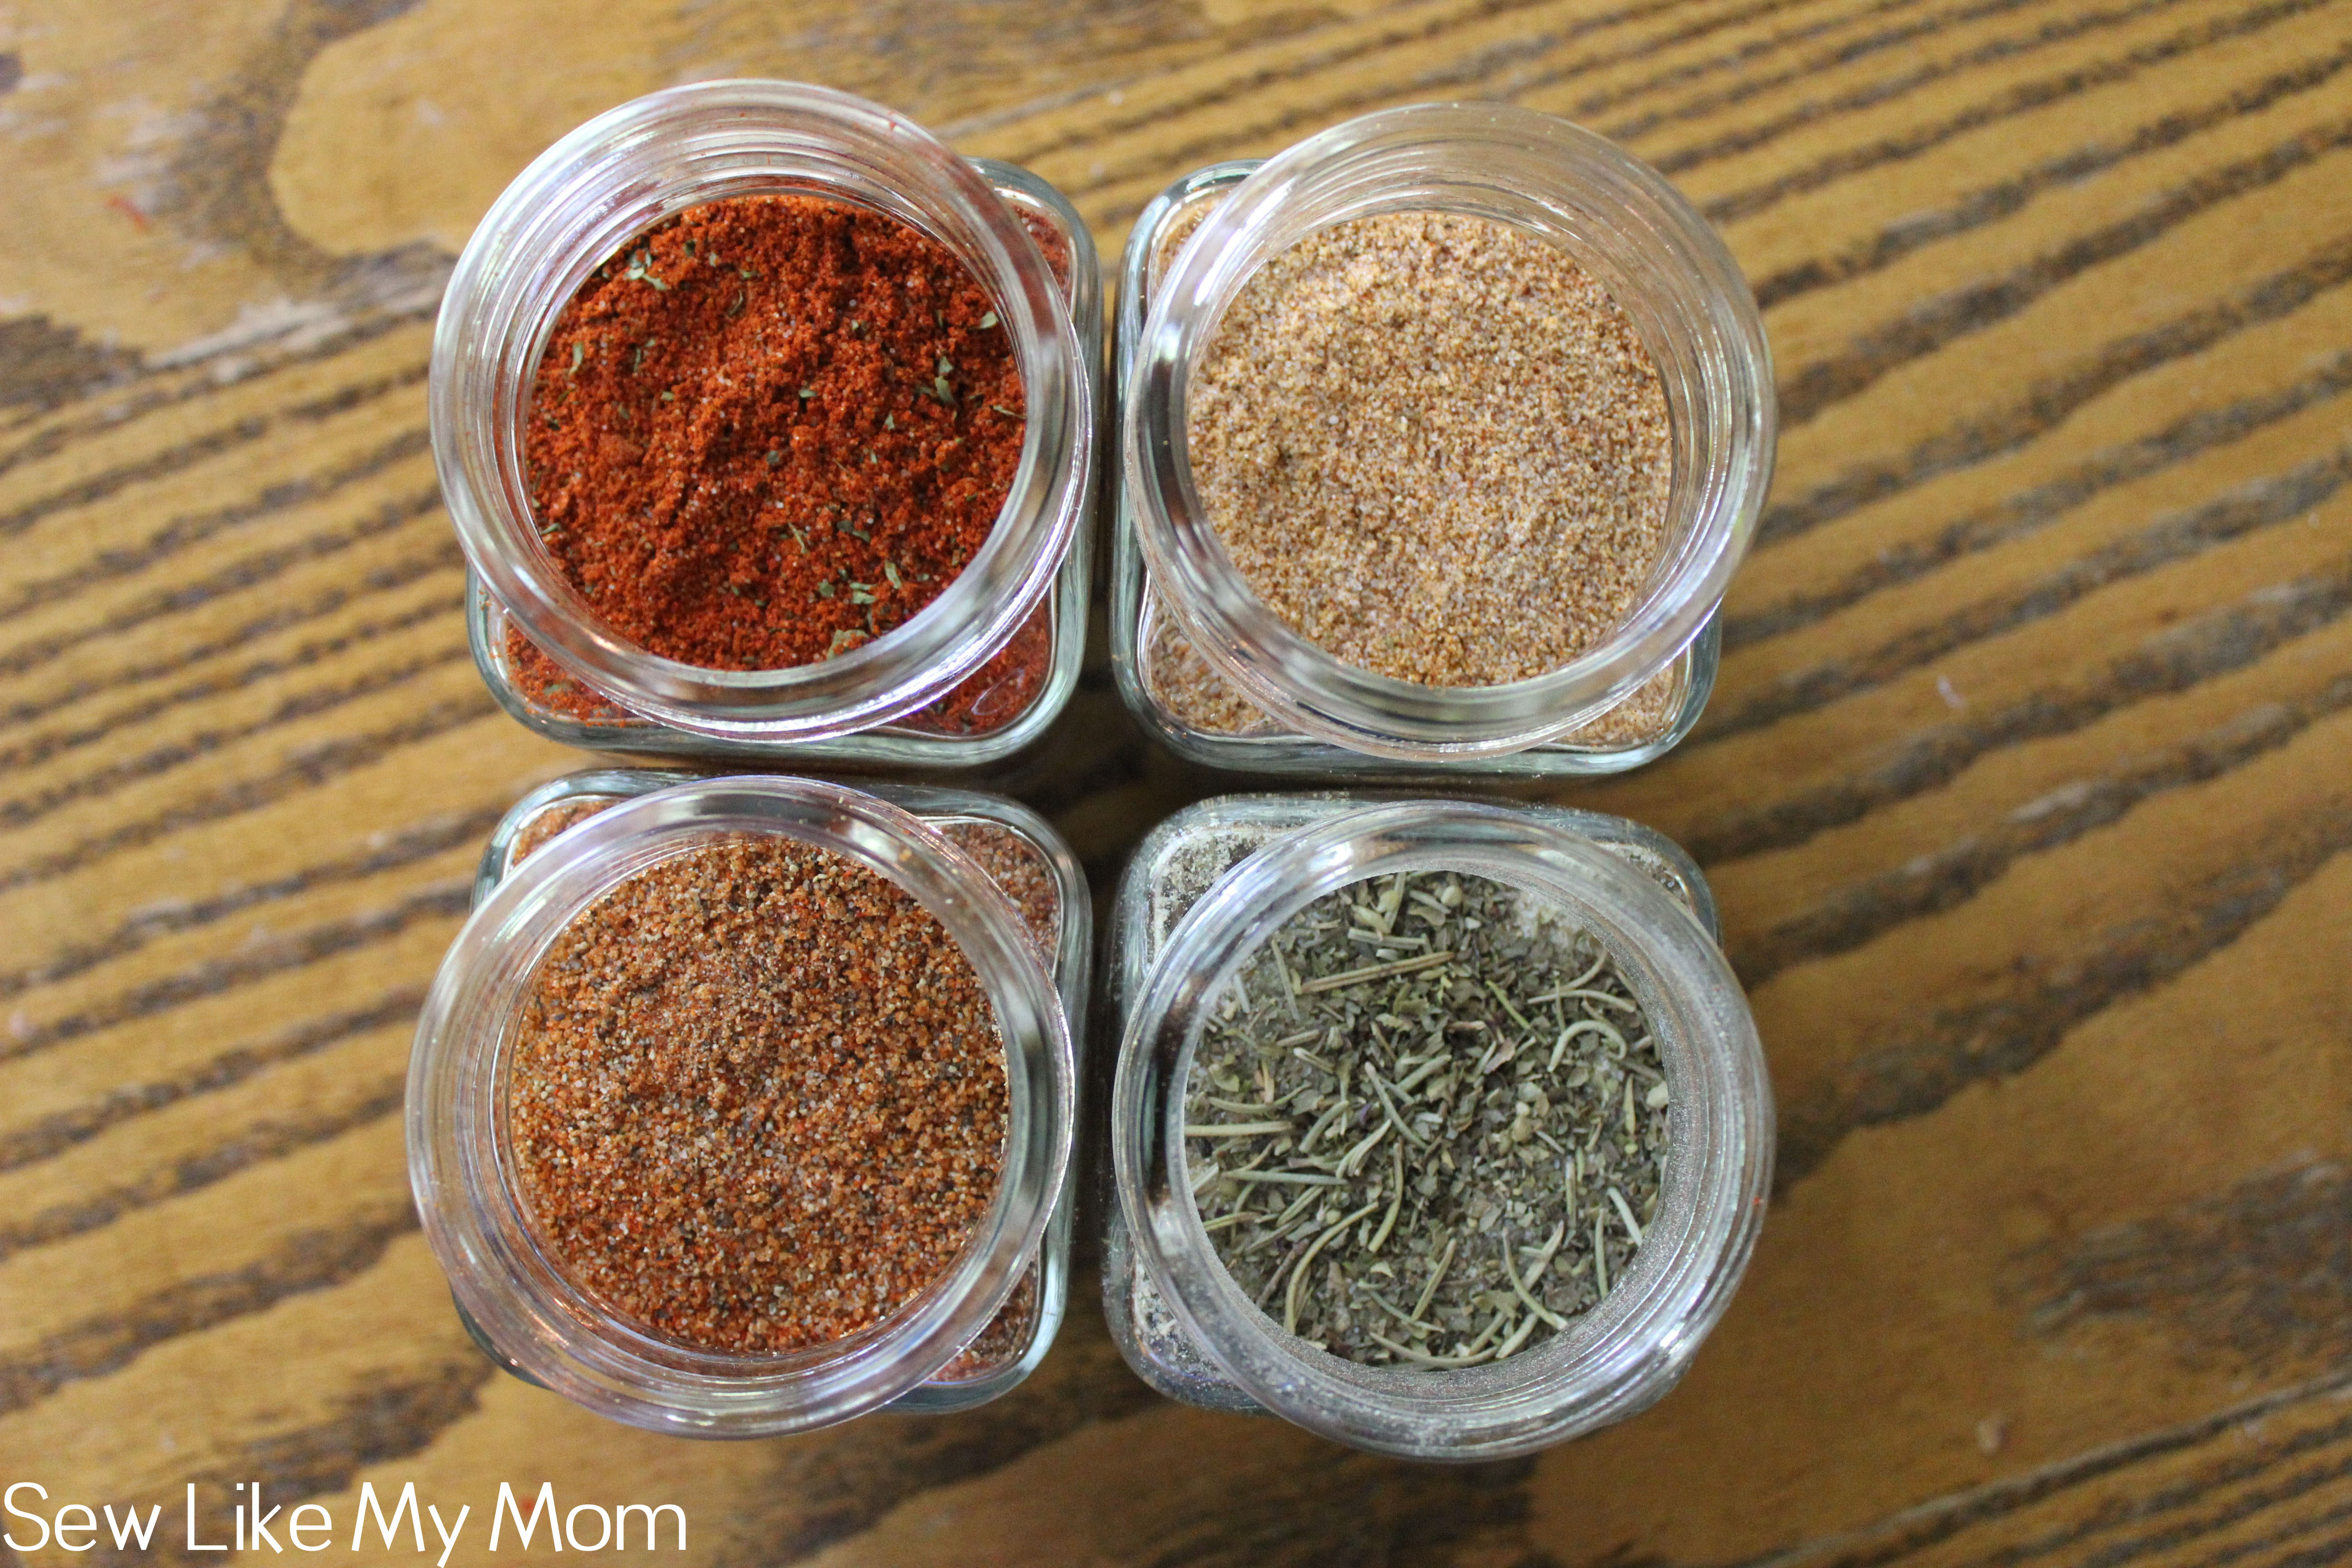 Sew Like My Mom | Homemade Meat Rubs